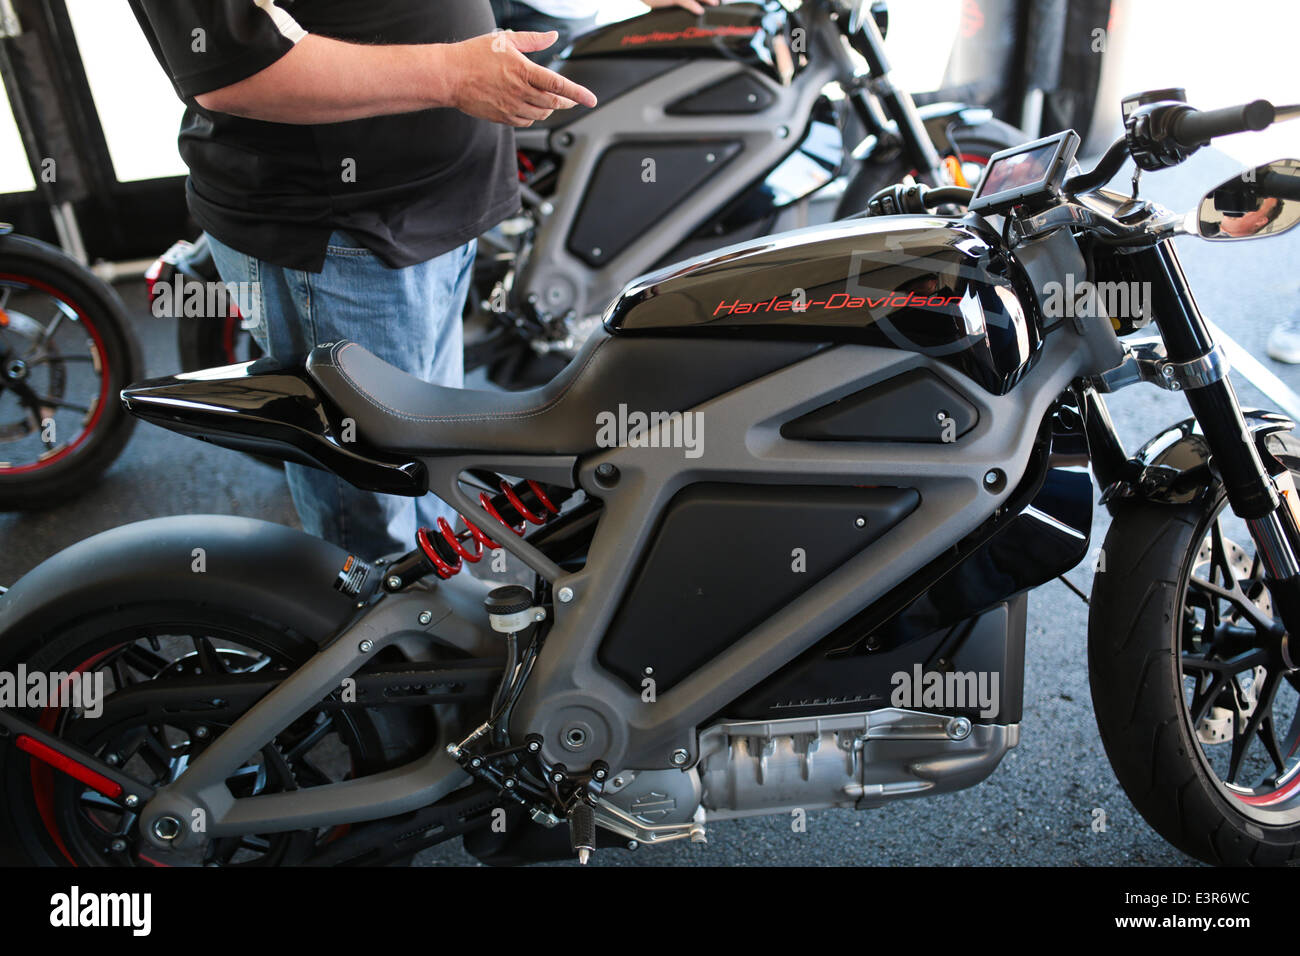 Amazing Harley Davidson Live Wire Electric Motorcycle Gallery ...